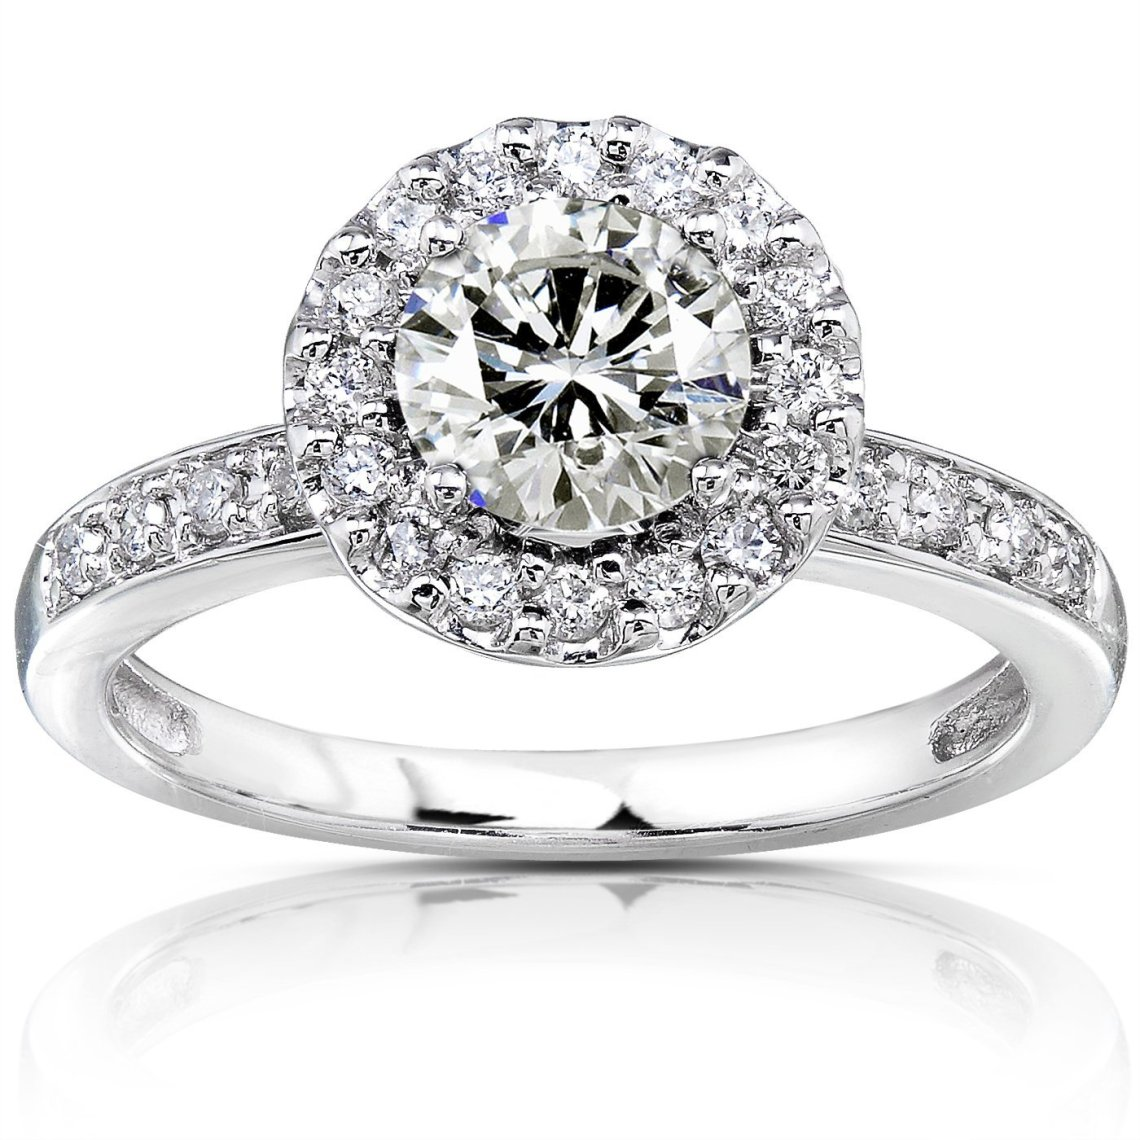 Image Result For Sell My Ring For Cash